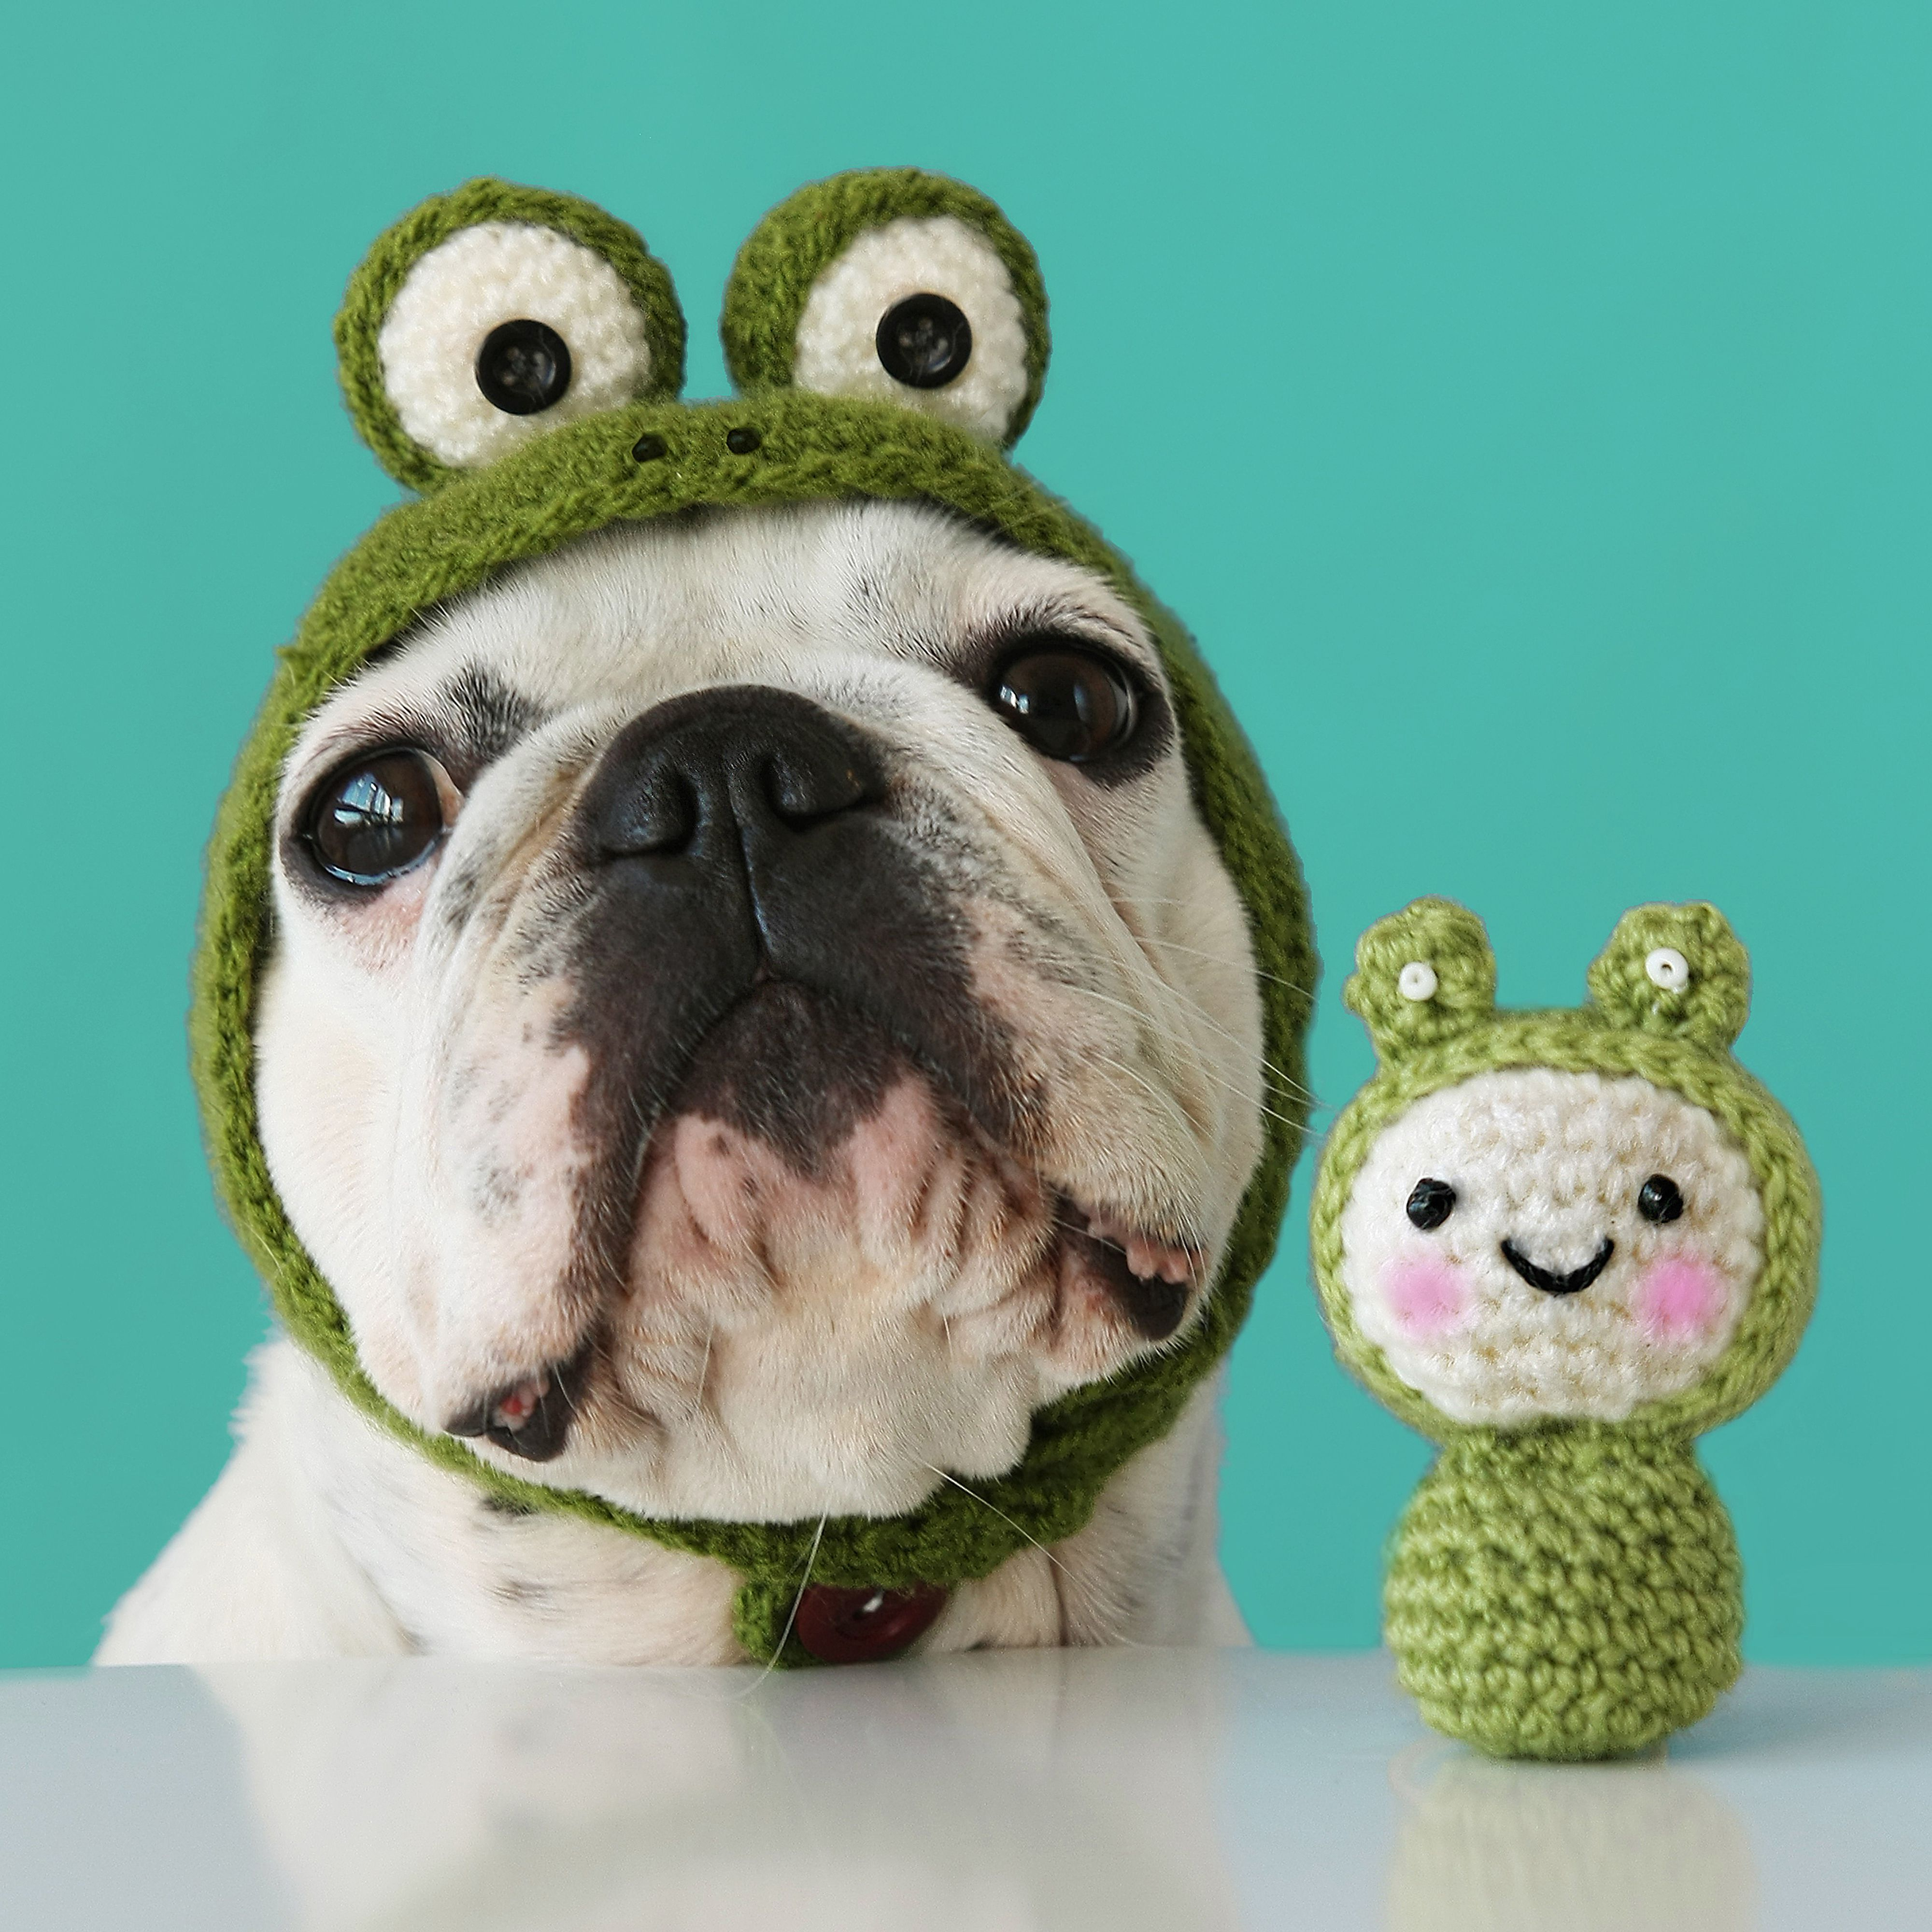 Dog doll and frog hats, made with crochet